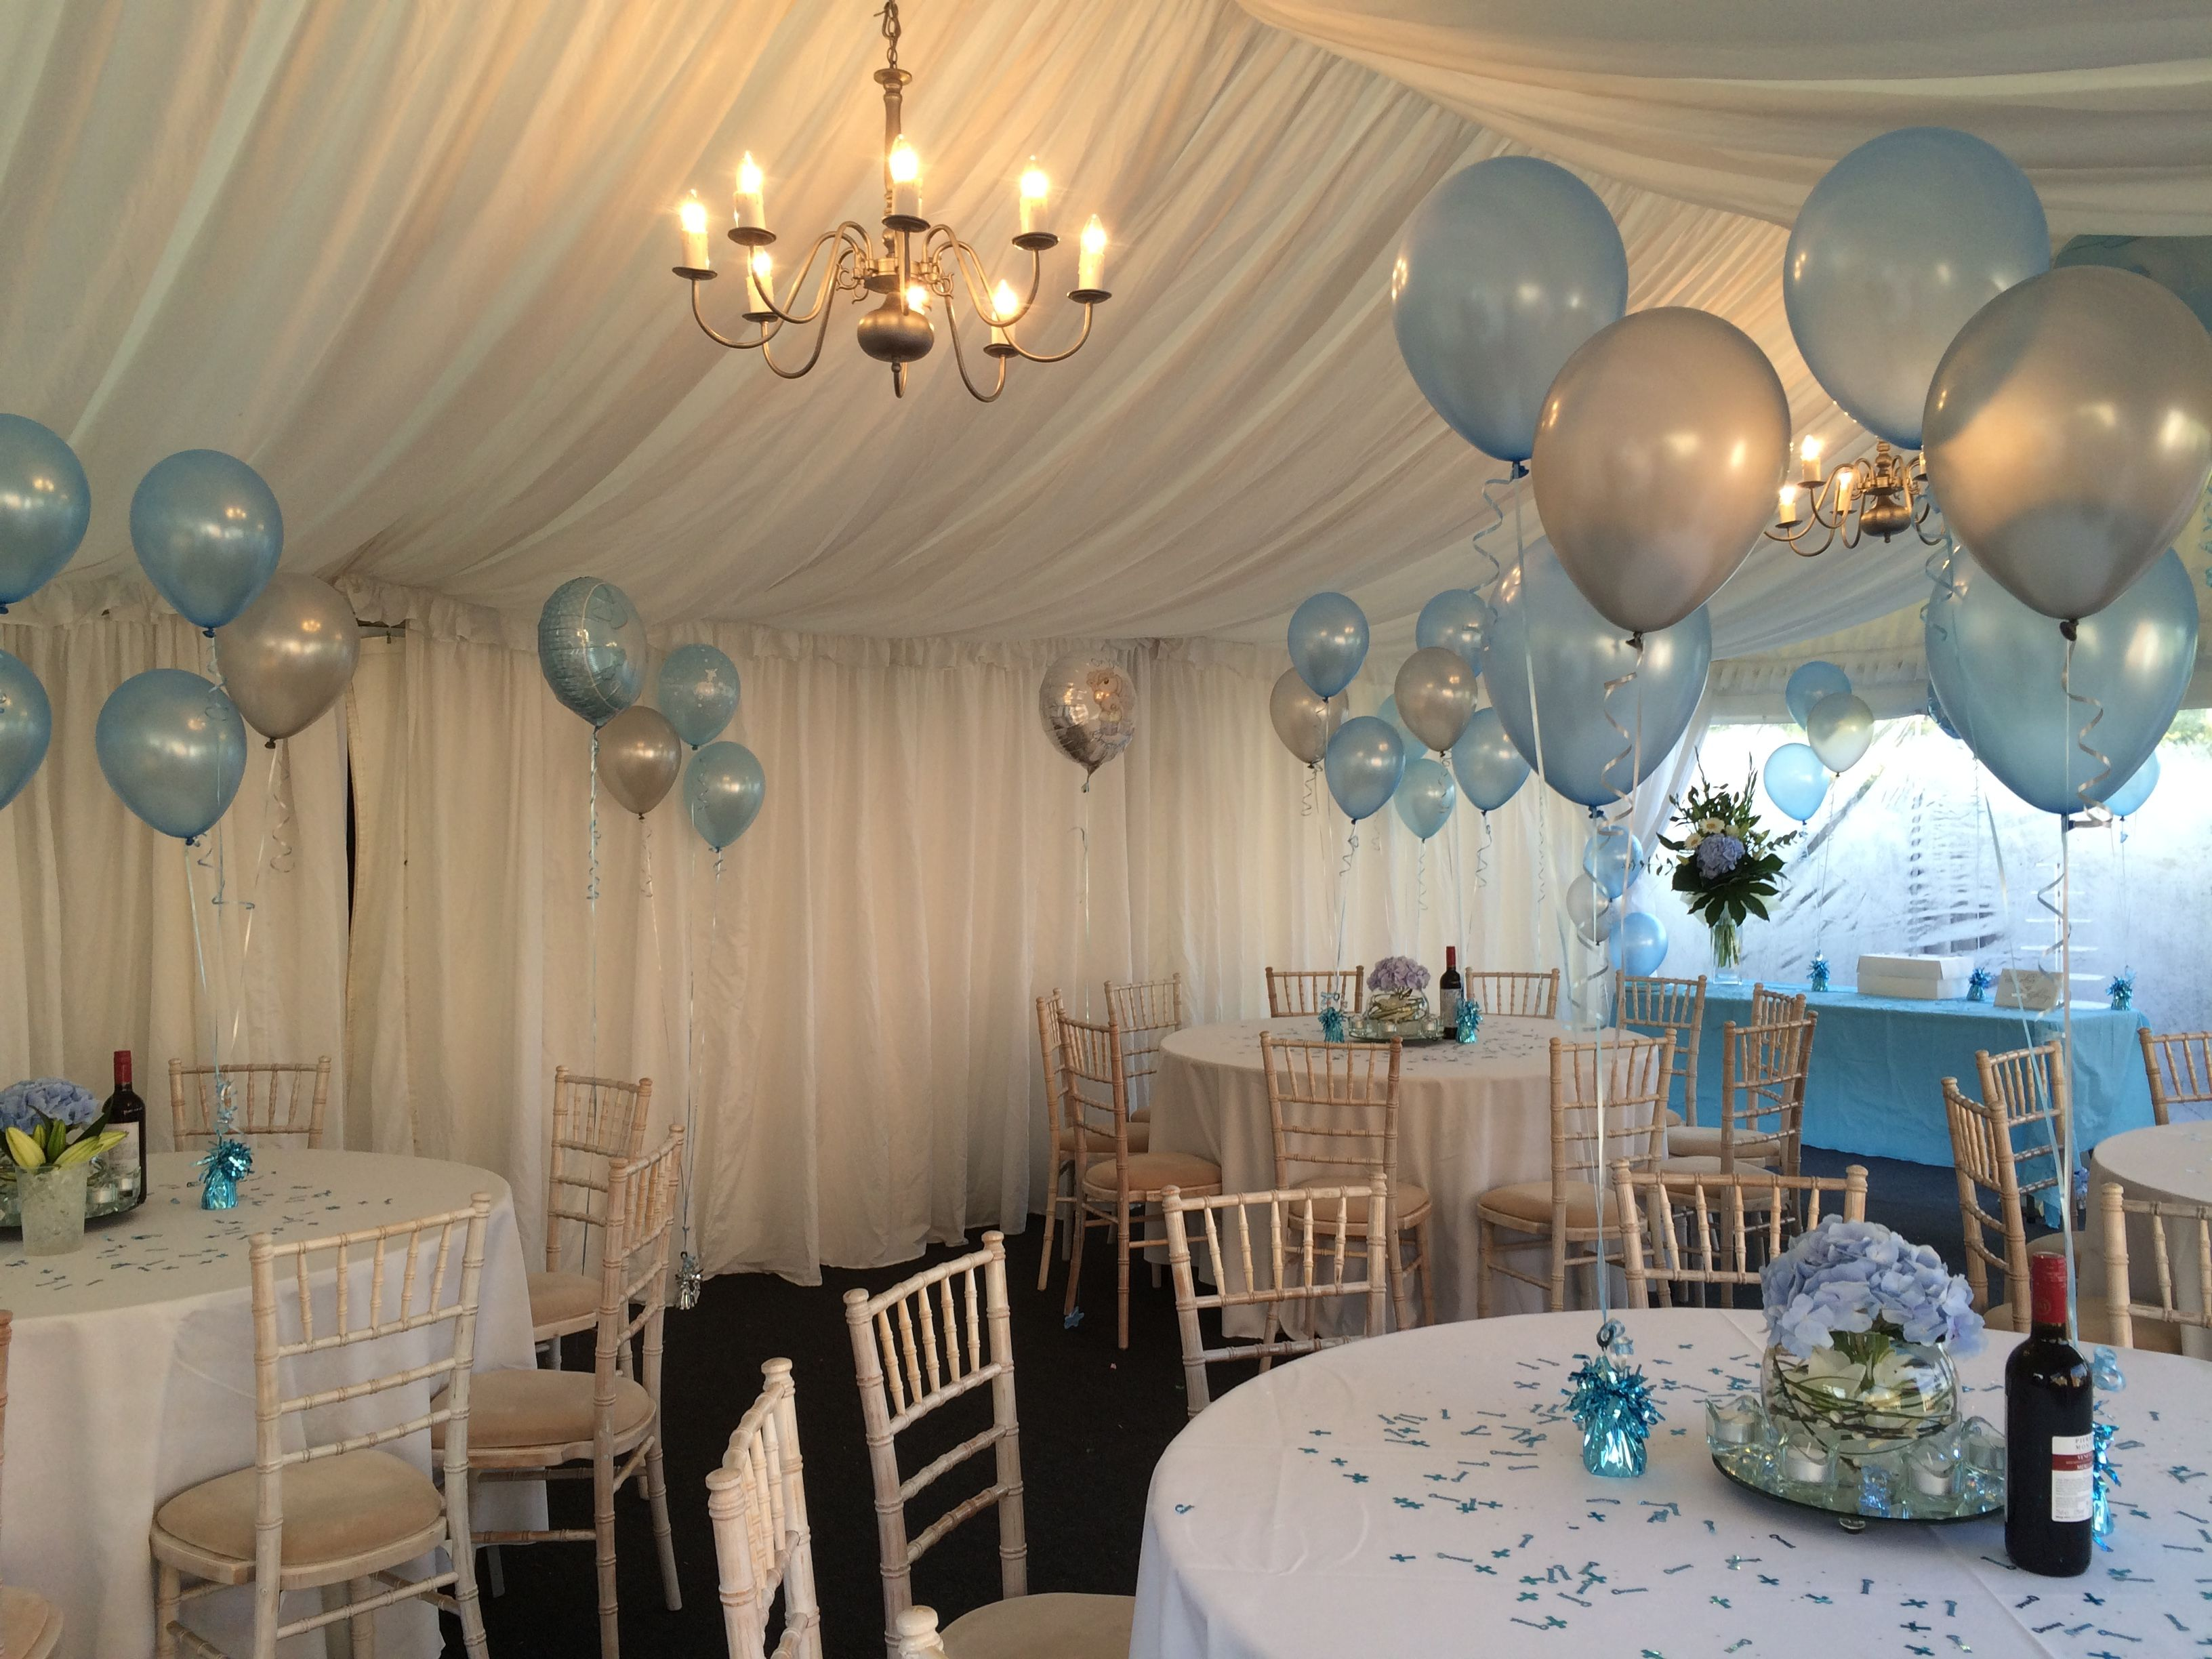 Complementary Floor And Table Balloon Decorations All Ready For The Christening Of A Lovely Baby Boy